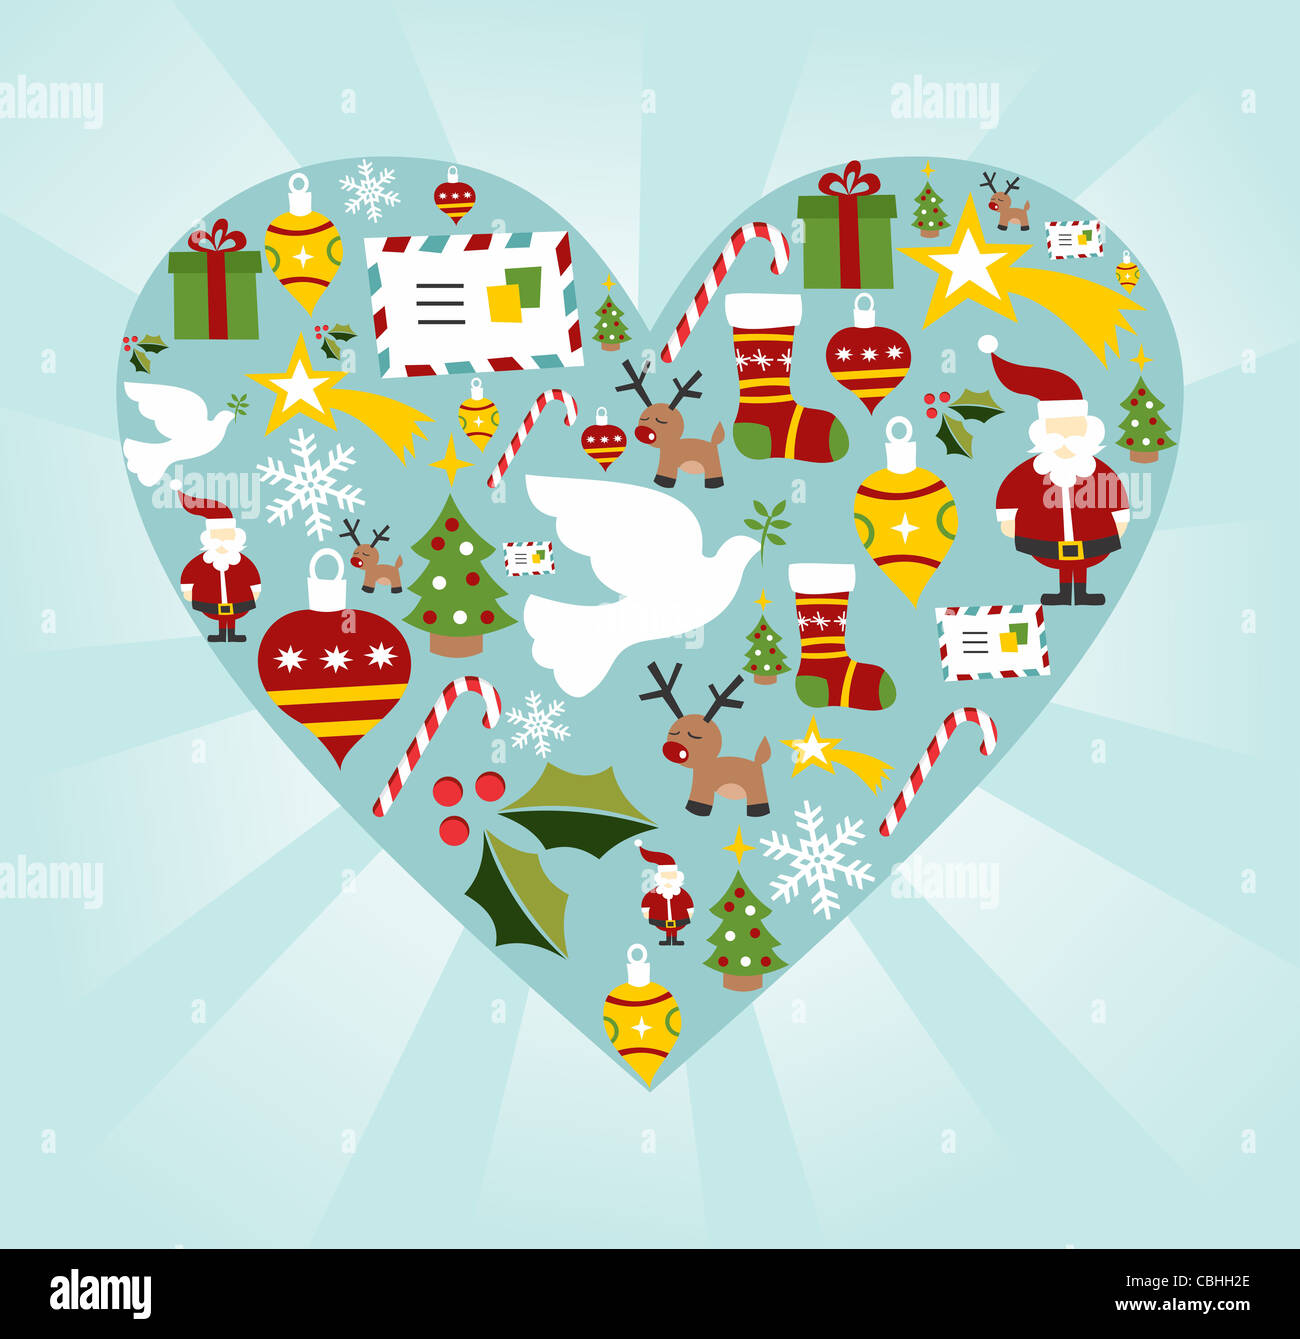 Christmas icon set in heart shape background. Vector file available. - Stock Image